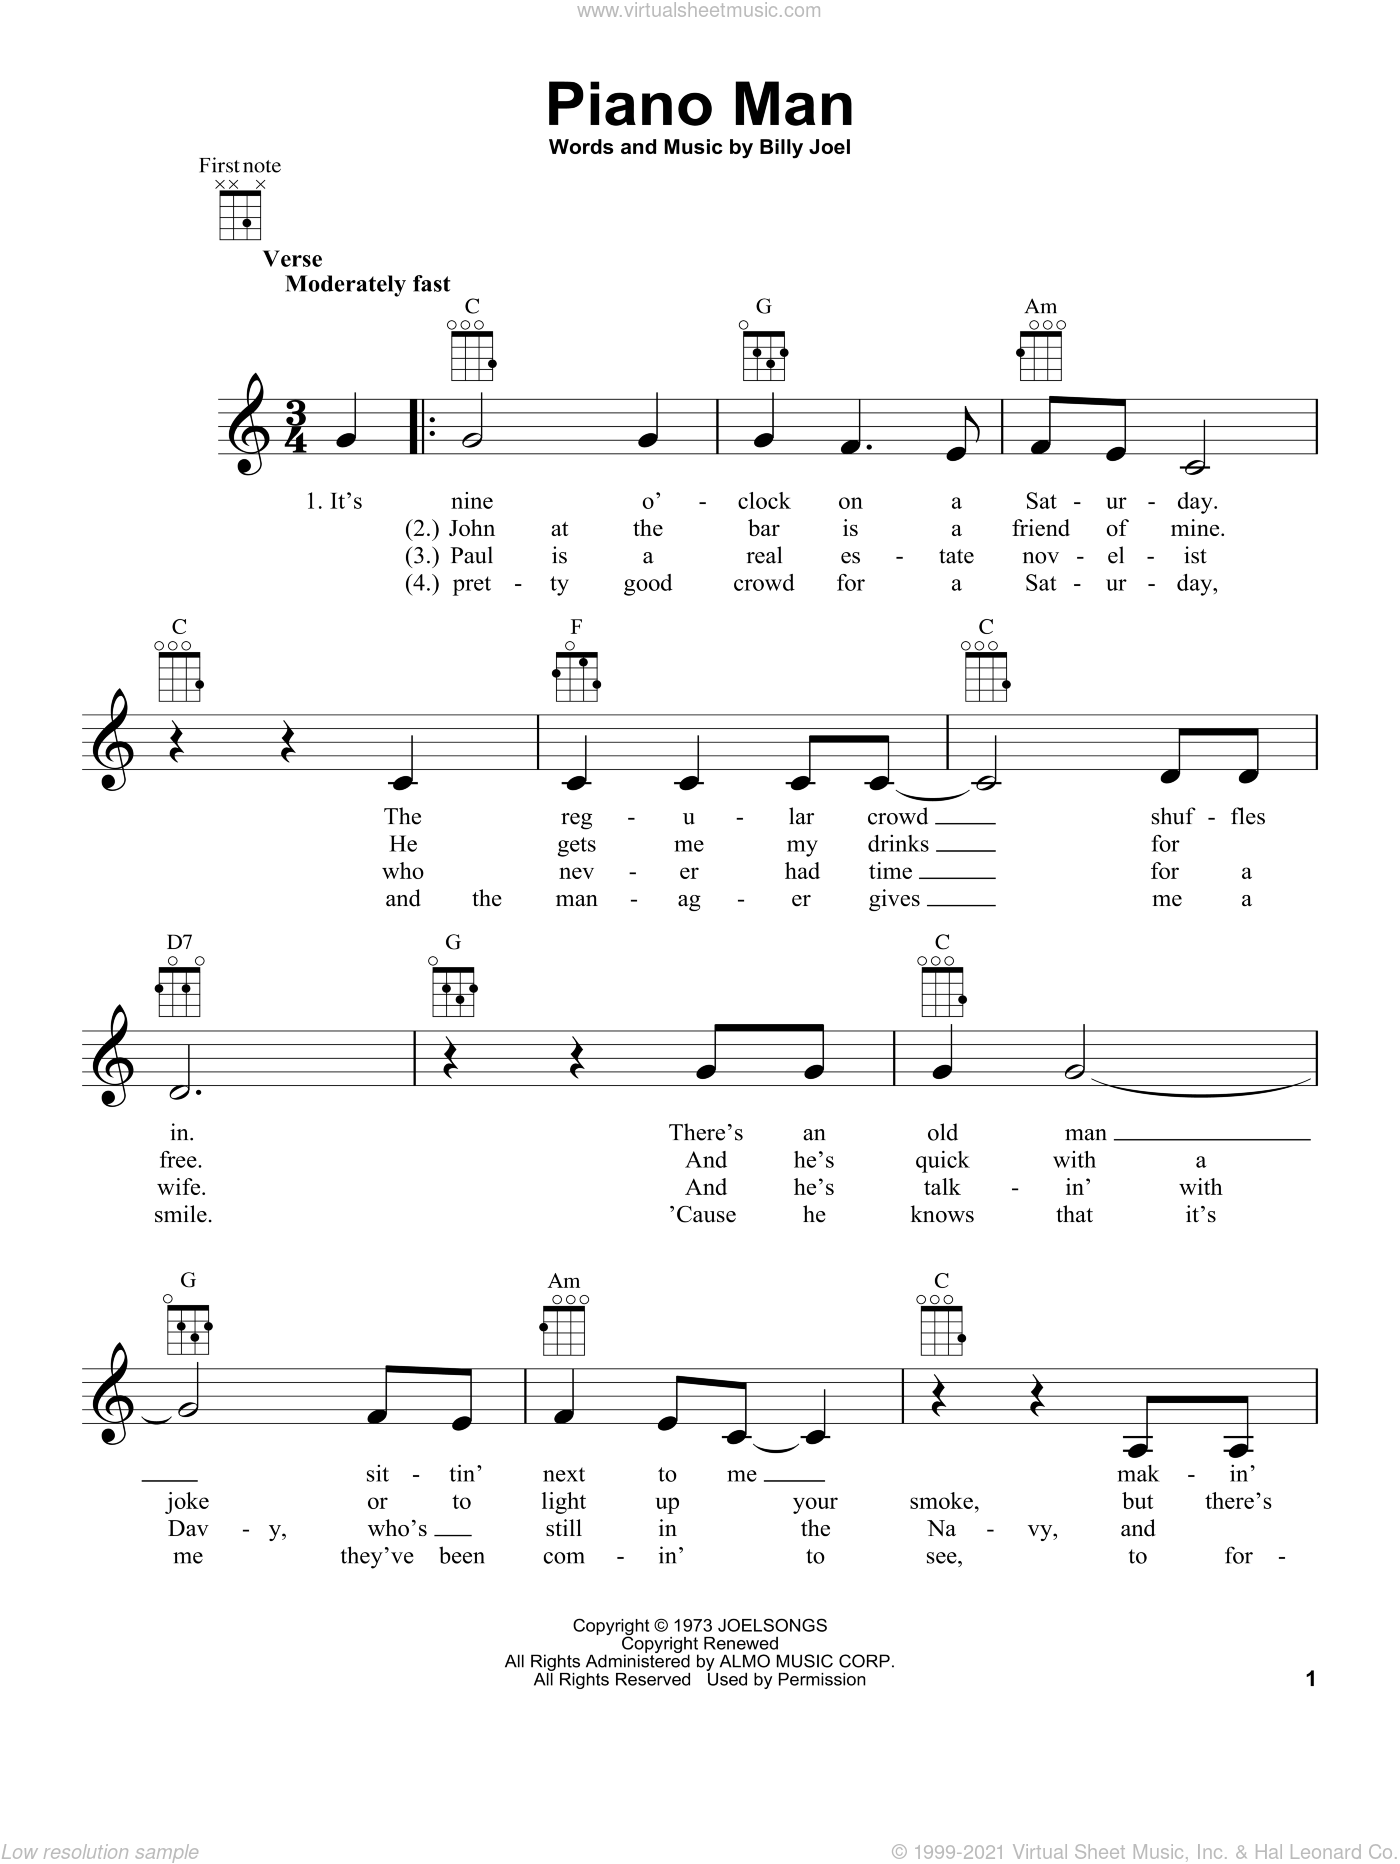 Piano Man sheet music for ukulele by Billy Joel, intermediate skill level